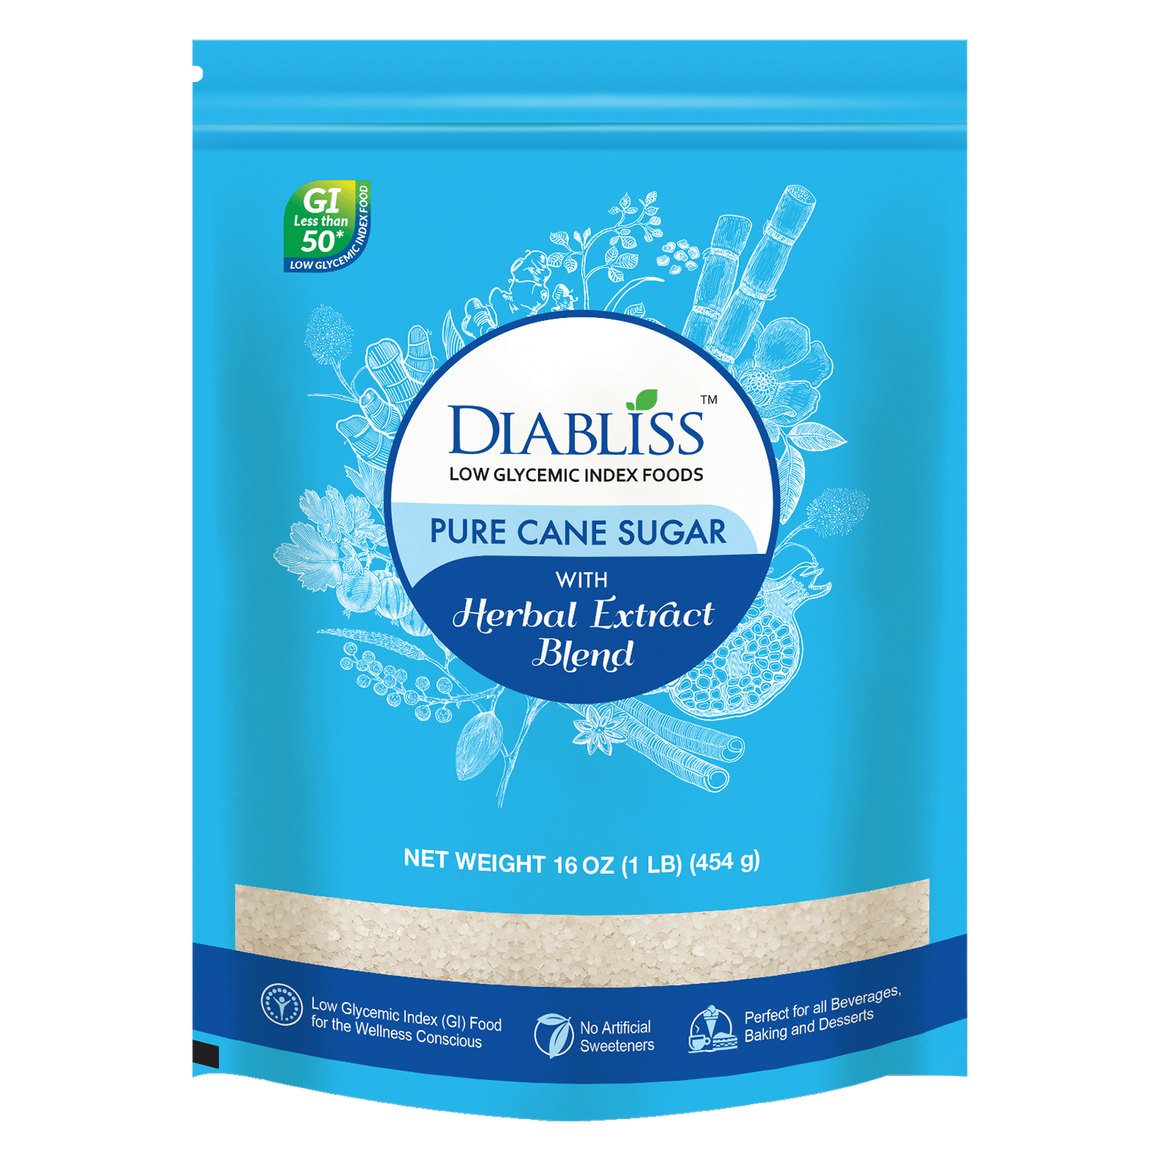 Diabliss Pure Cane Sugar 1LB